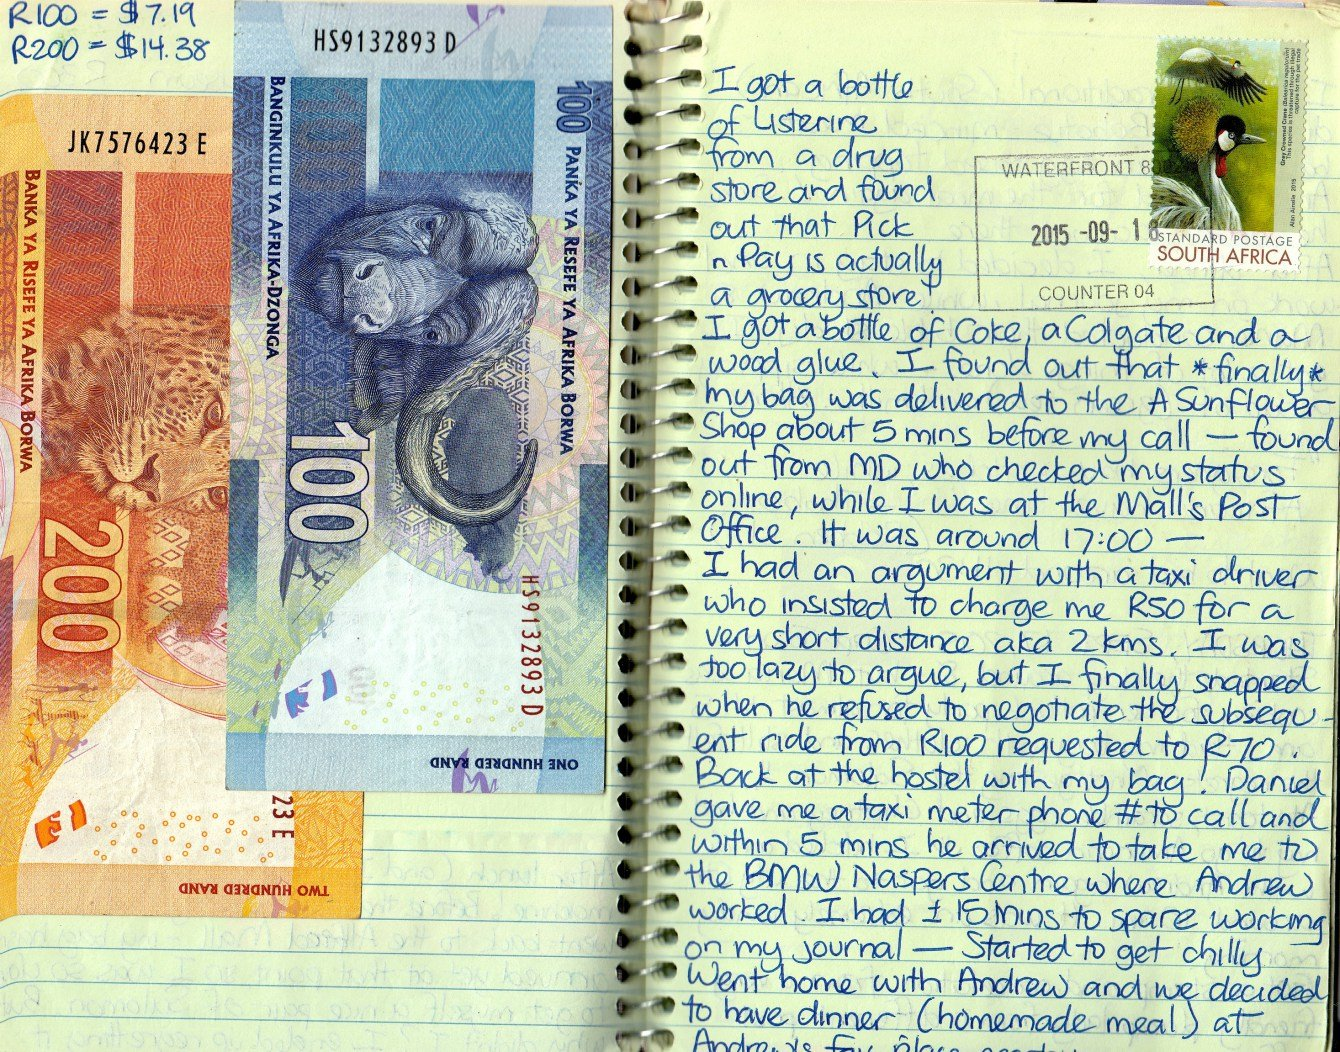 money pasted in a travel journal